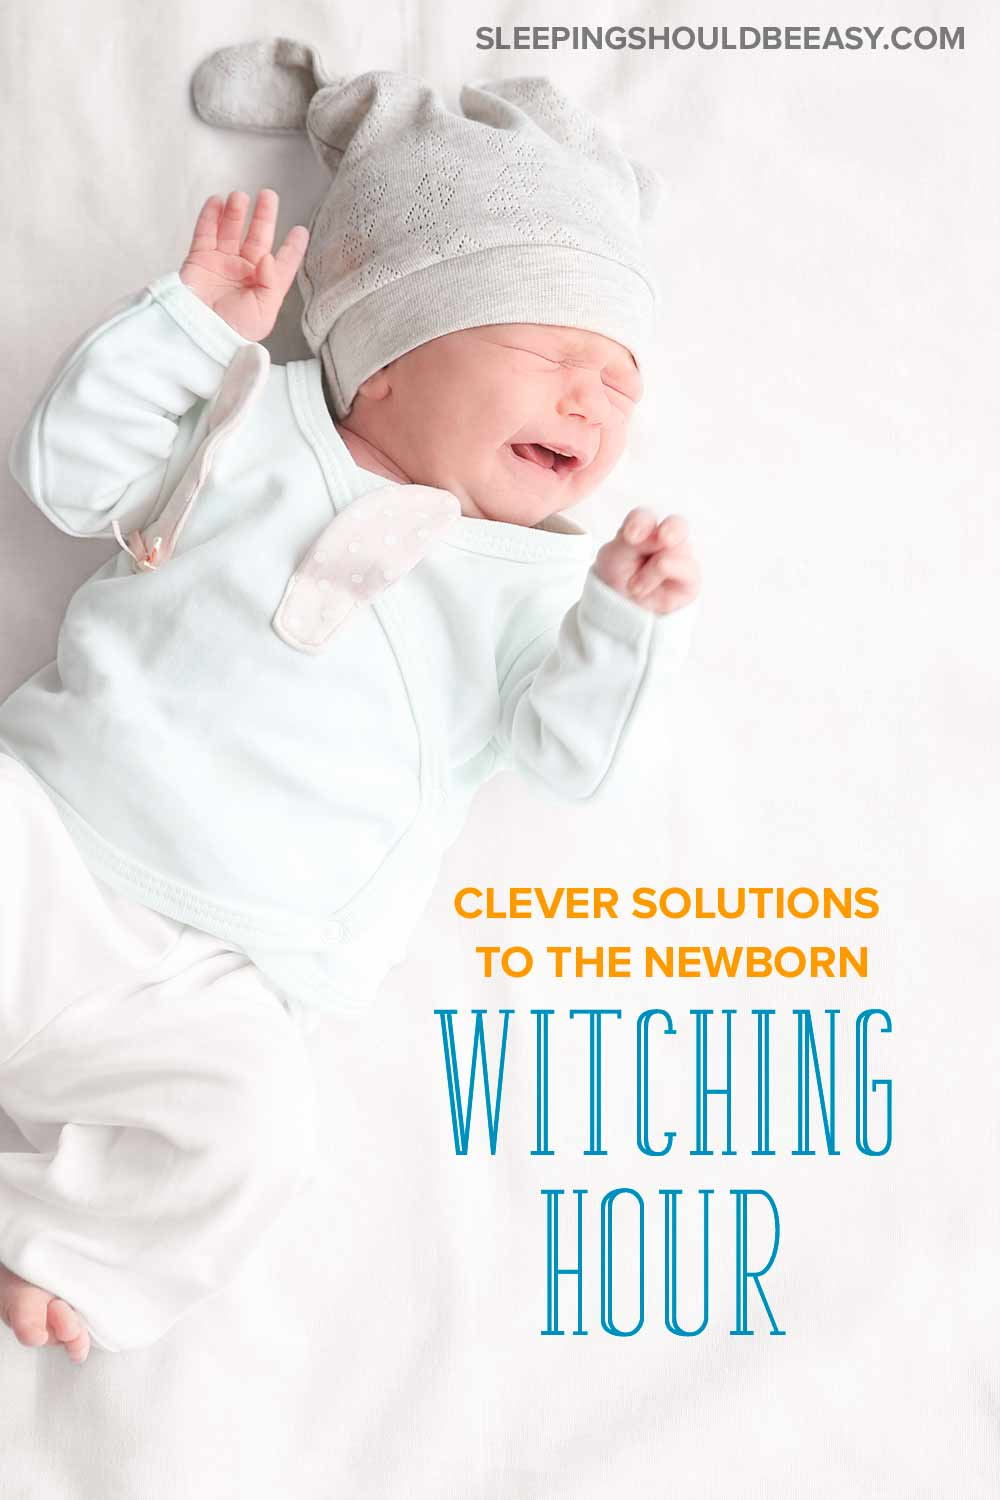 Newborn Witching Hour Clever Solutions That Will Save Your Sanity